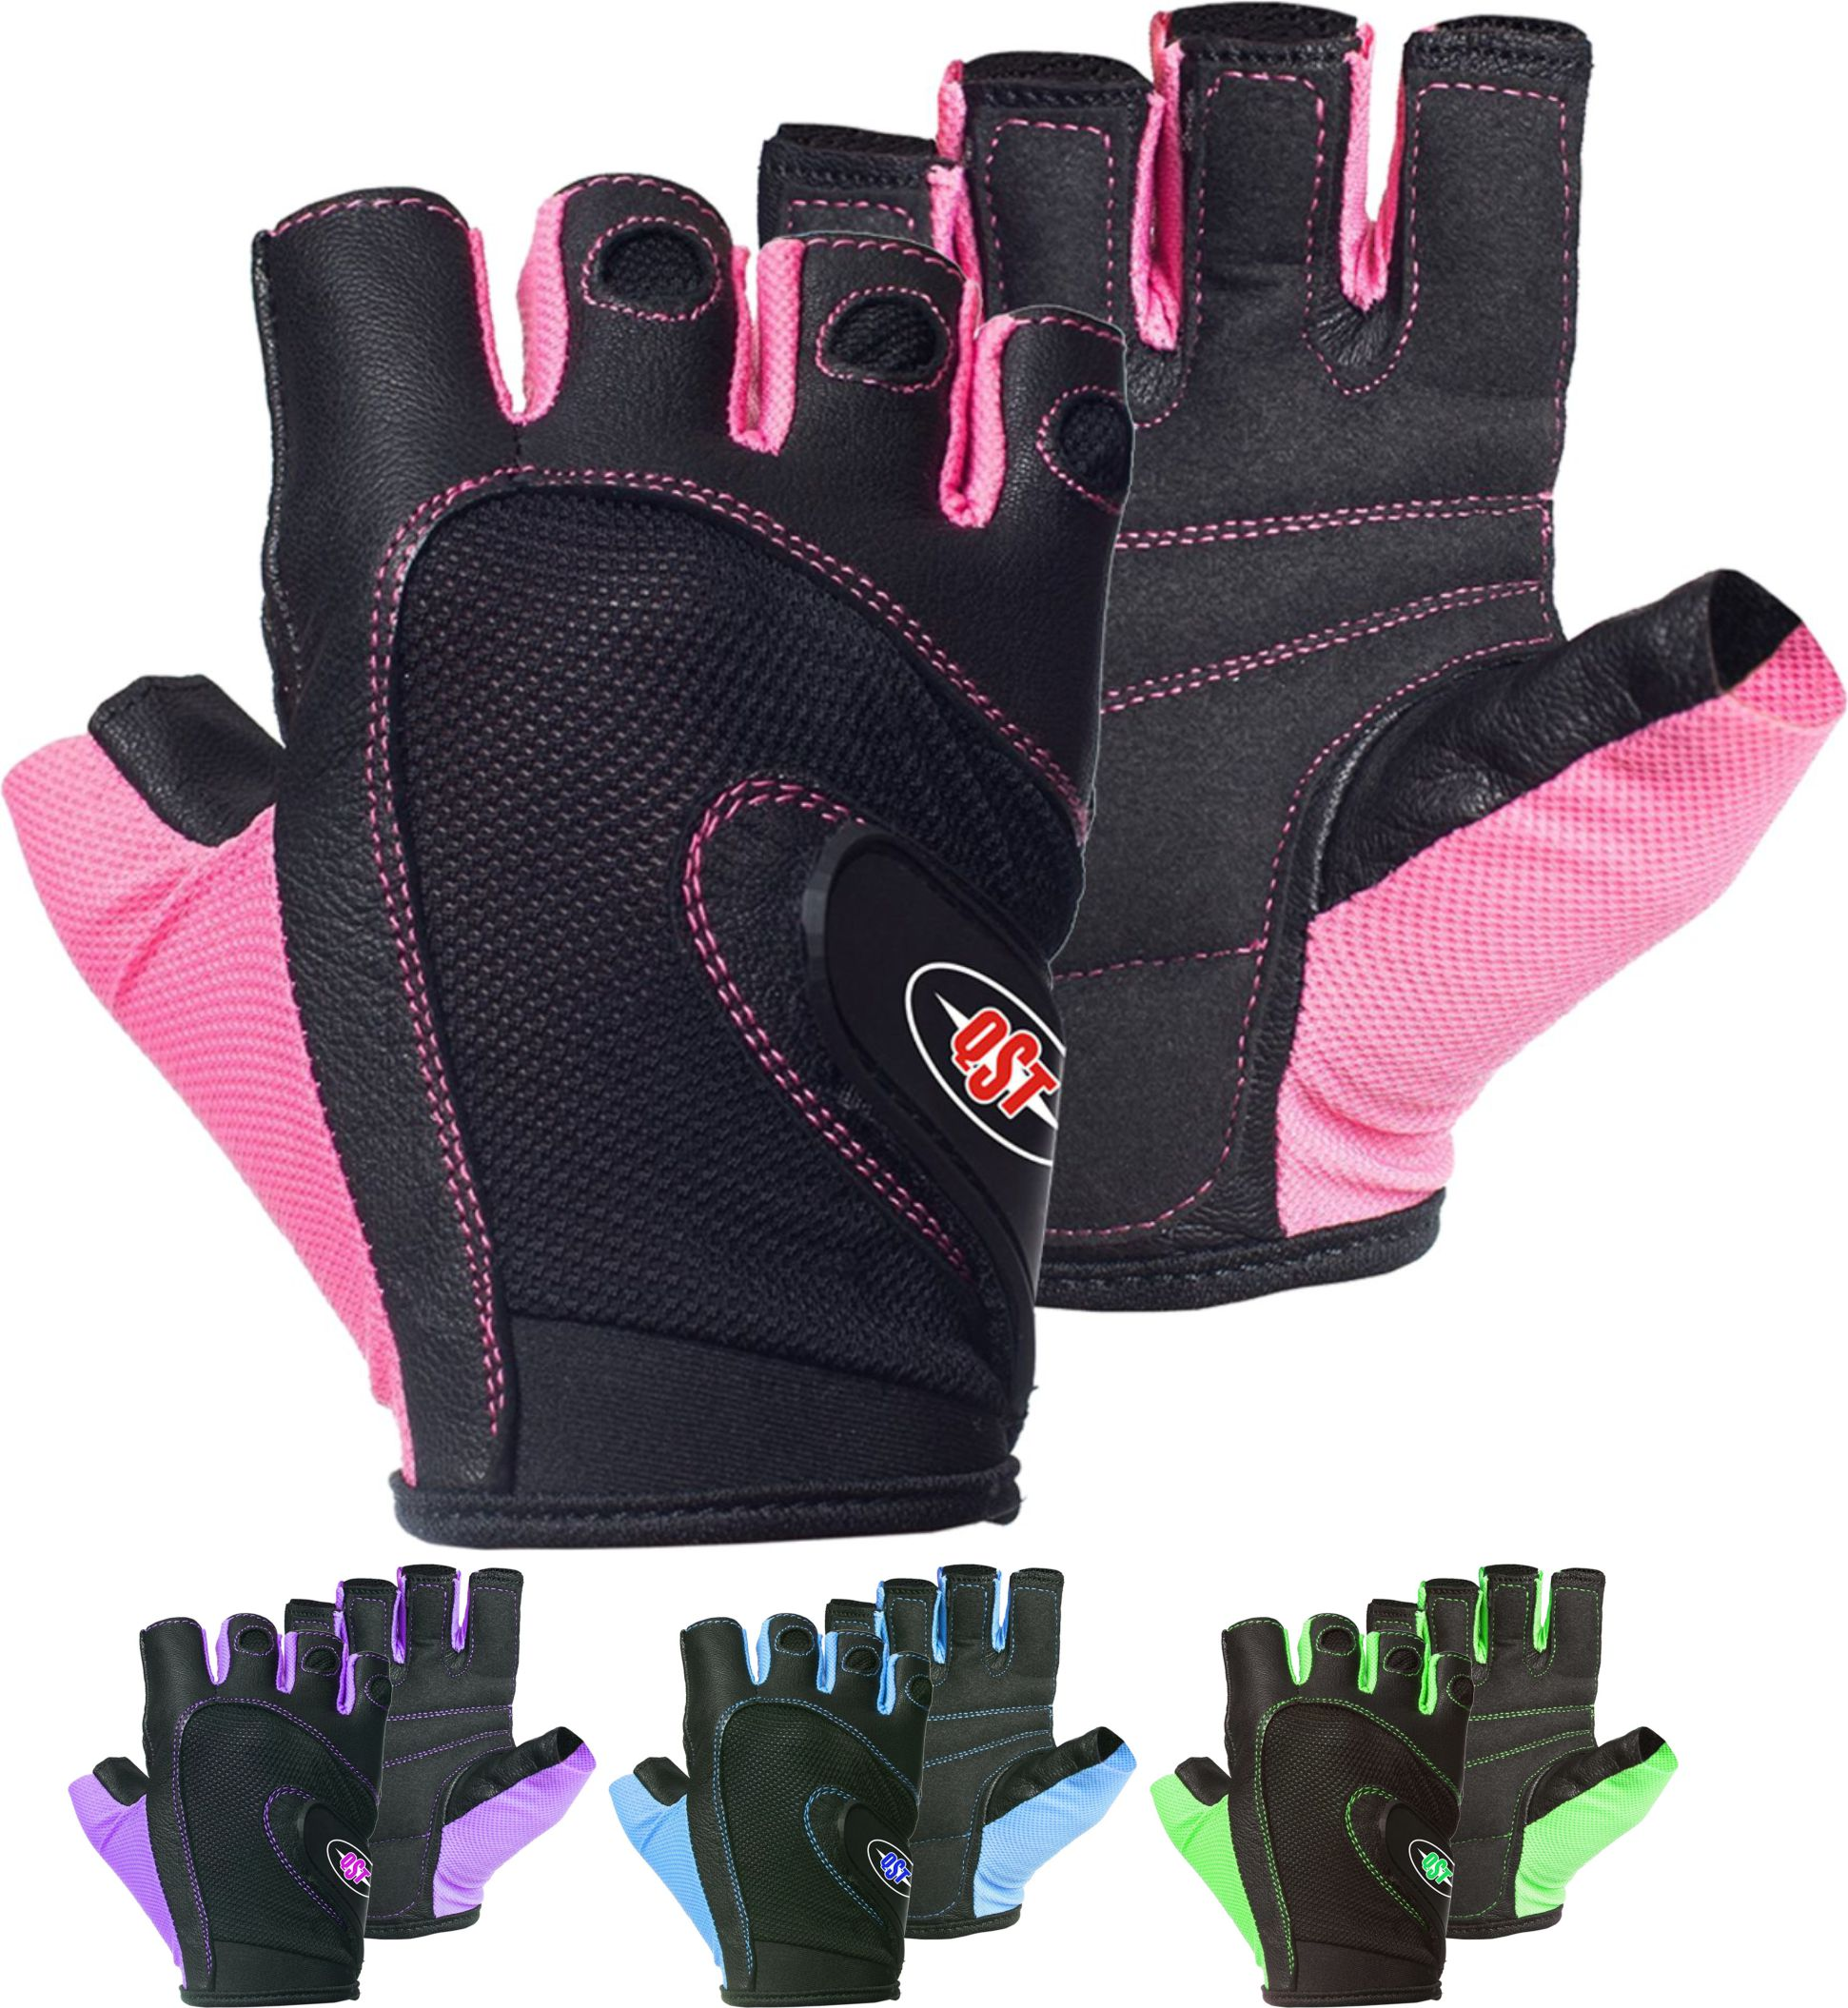 Women Weight Lifting Gloves - QST-6709